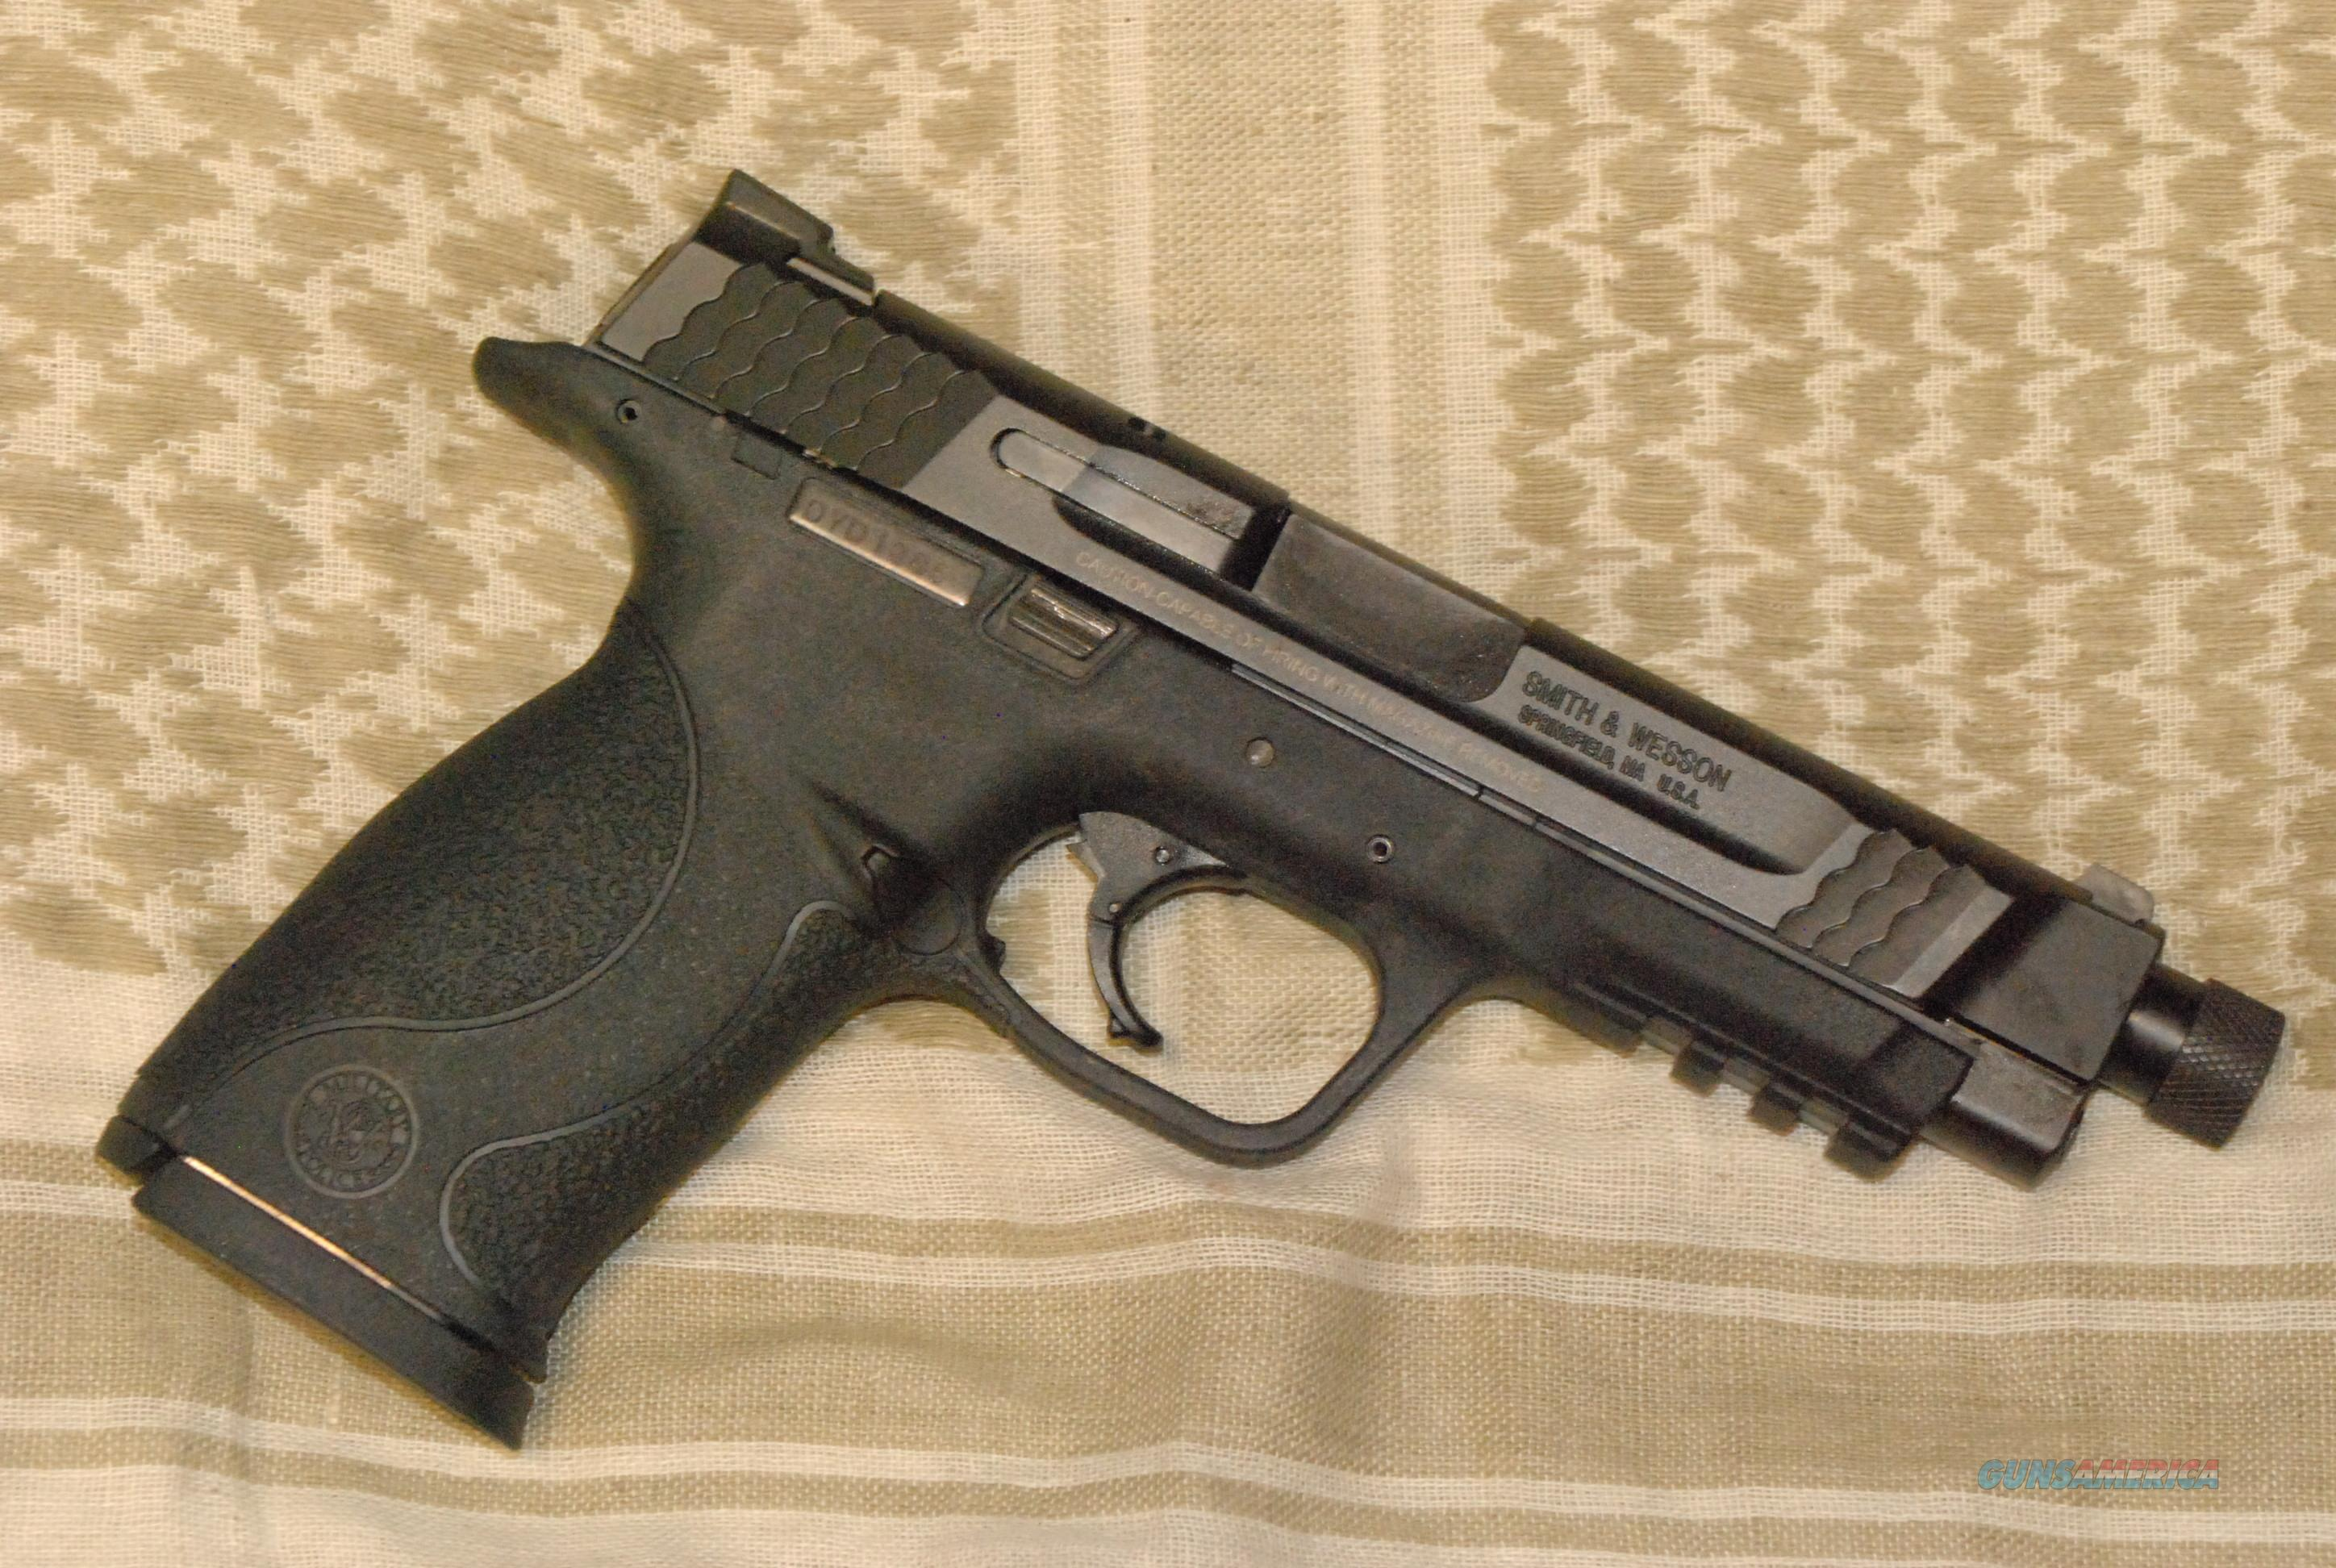 S&W M&P 45 .45acp with Threaded & Stock Barrel...  Guns > Pistols > Smith & Wesson Pistols - Autos > Polymer Frame